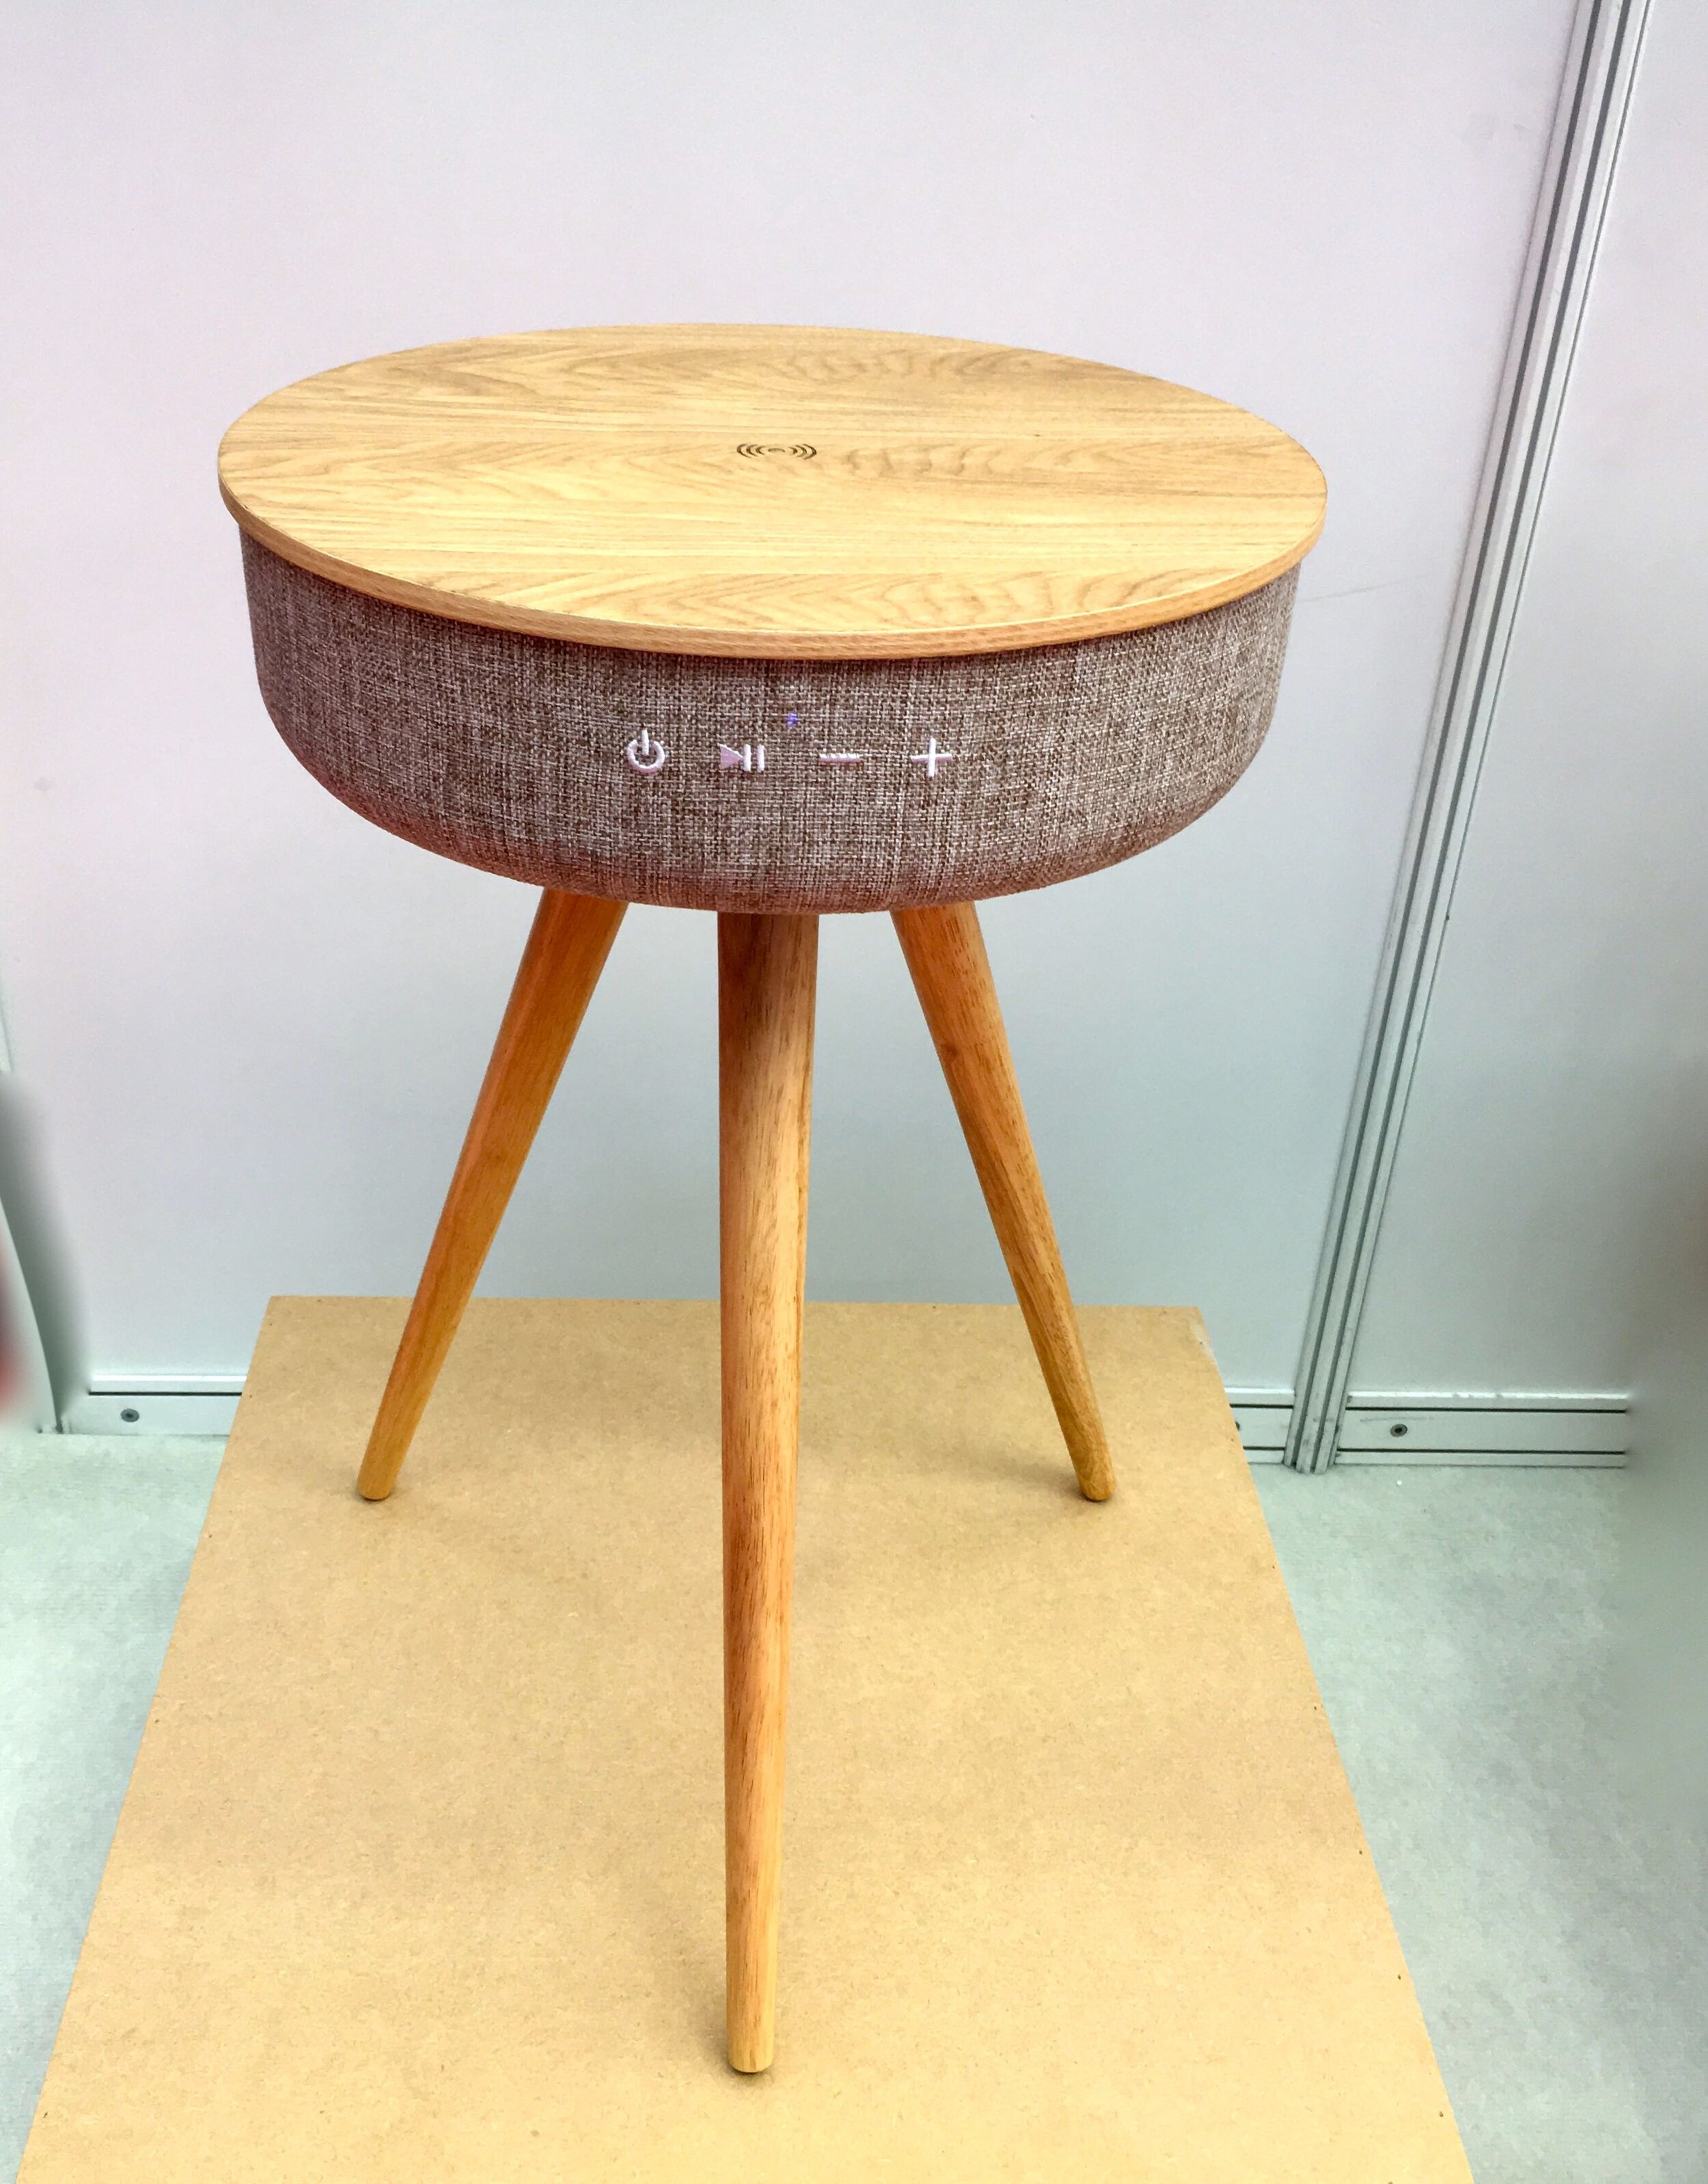 A stool or side table